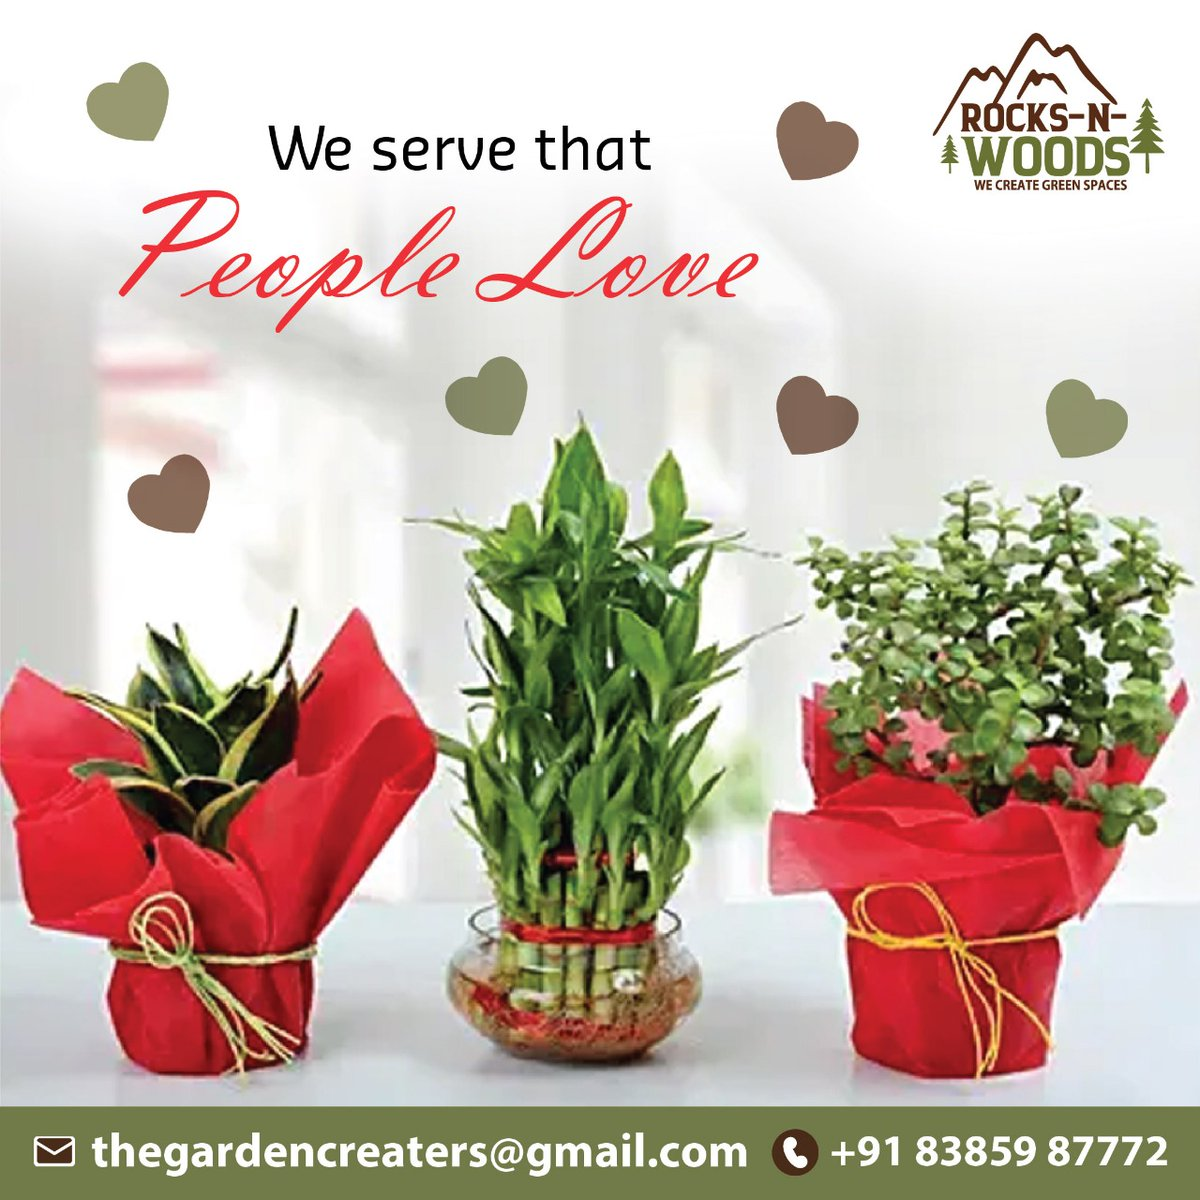 We serve that people love  Call- +91 8385987772 thegardencreators@gmail.com #gardener #gardening #garden #gardenlife #flowers #plants #nature #gardens #growyourown #mygarden #gardeninspiration #gardenersworld #vegetables #backyardgarden #gardenlovers #planting